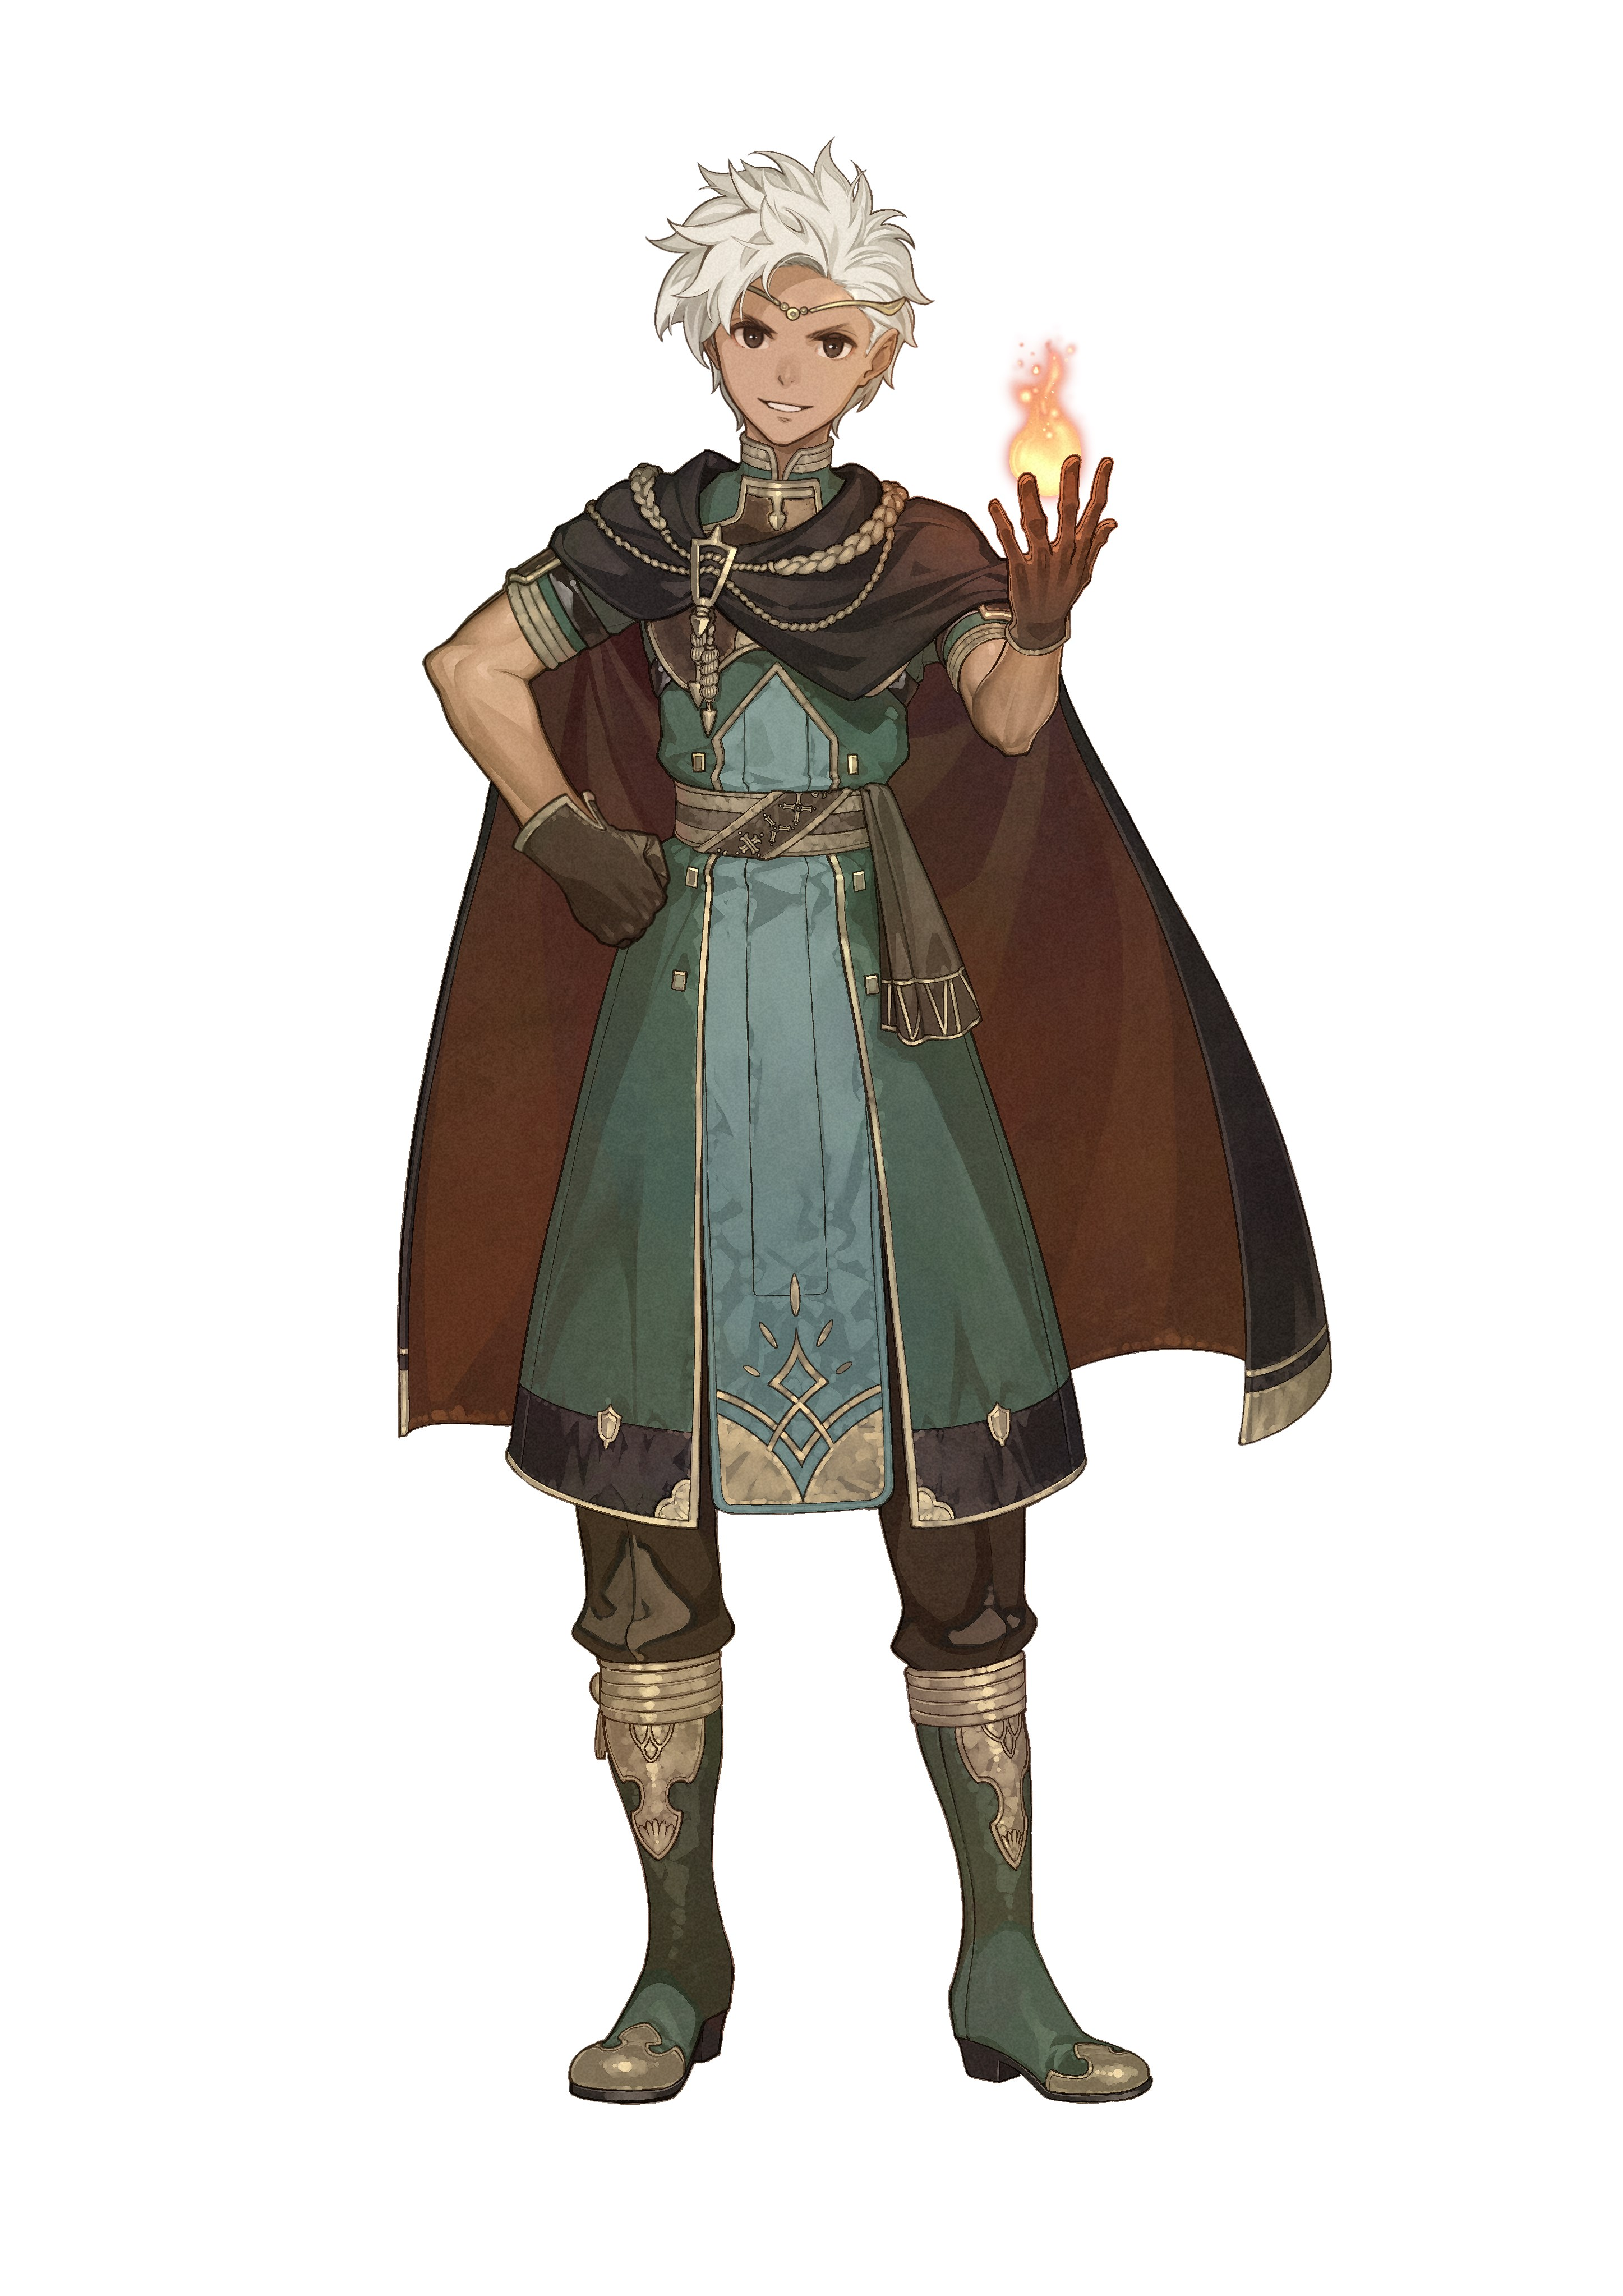 IMAGE(https://serenesforest.net/wp-content/gallery/fire-emblem-echoes-announcement/echoes-character4.jpg)